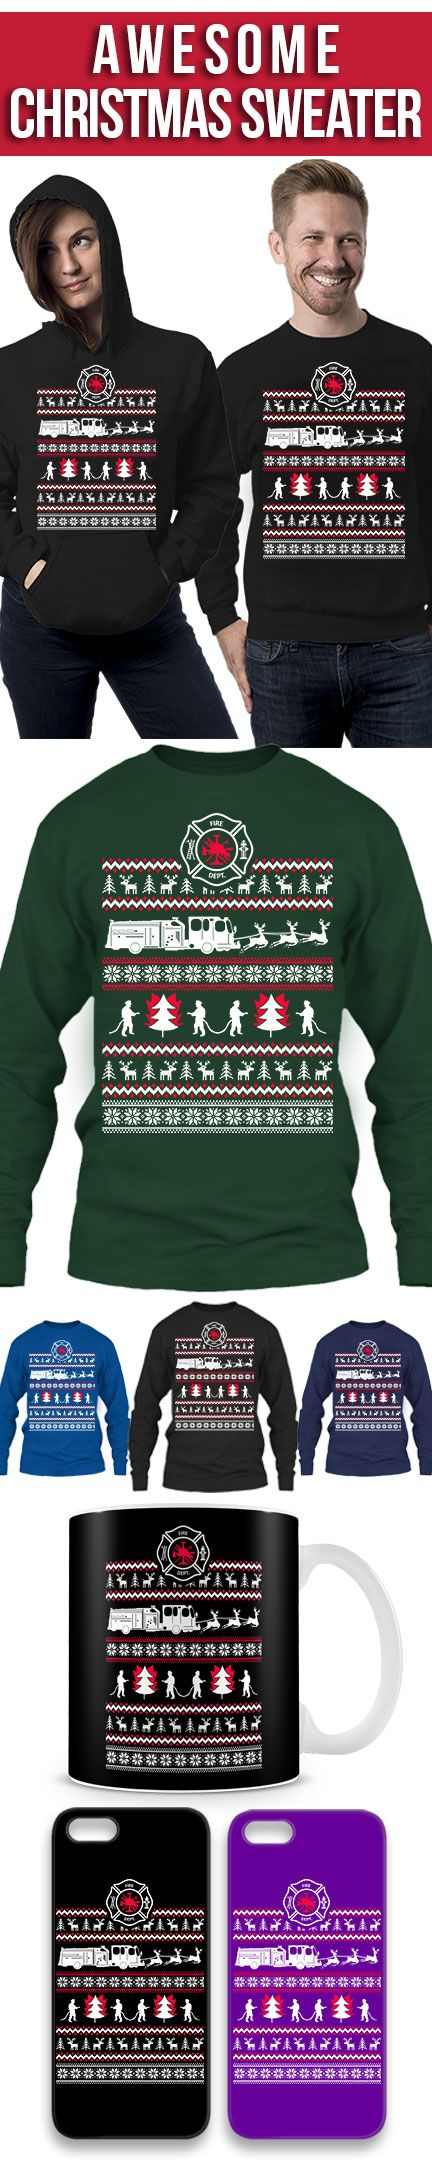 Firefighter Ugly Christmas Sweater! Click The Image To Buy It Now or Tag Someone You Want To Buy This For. #firefighter